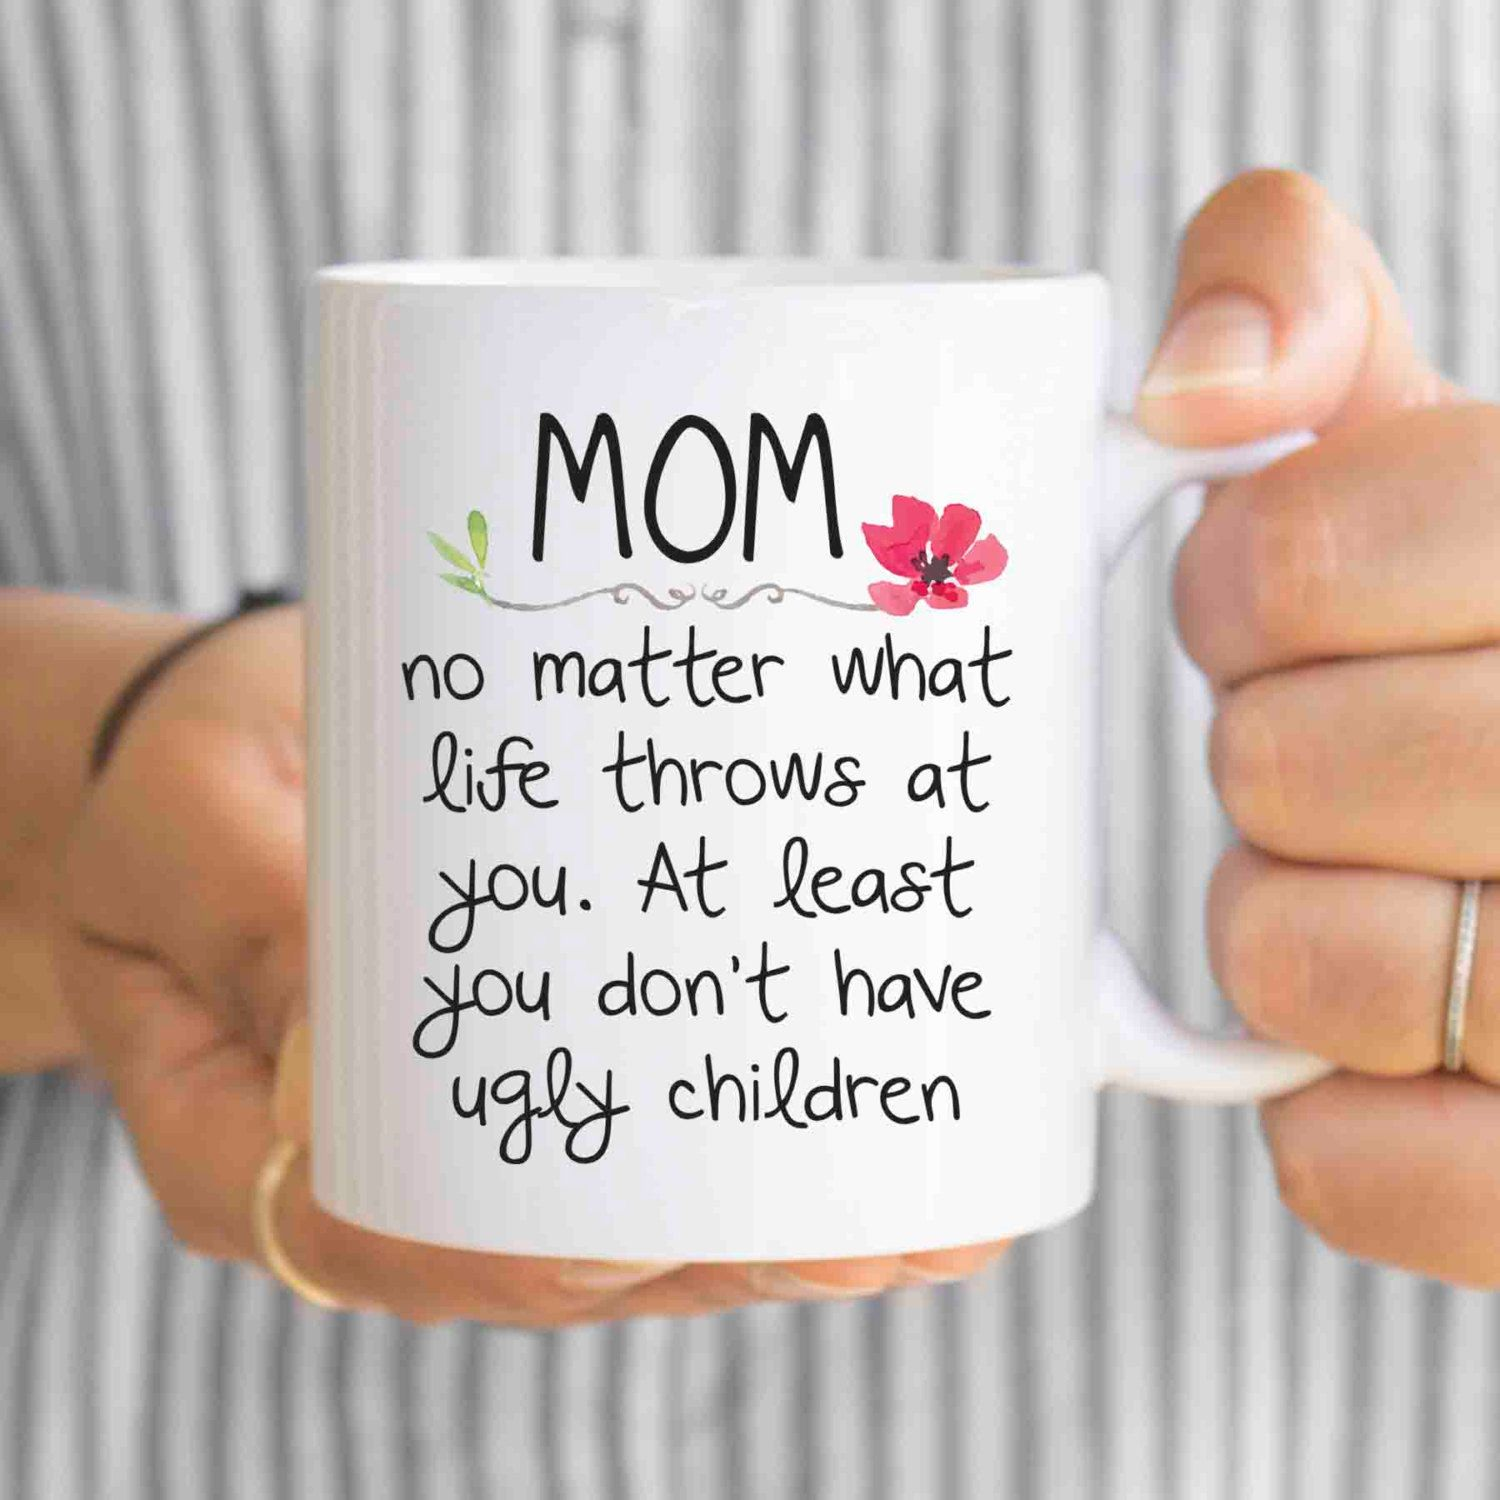 Mothers Day Gift From Daughter Mom Coffee Mug Gifts For MU139 By ArtRuss On Etsy